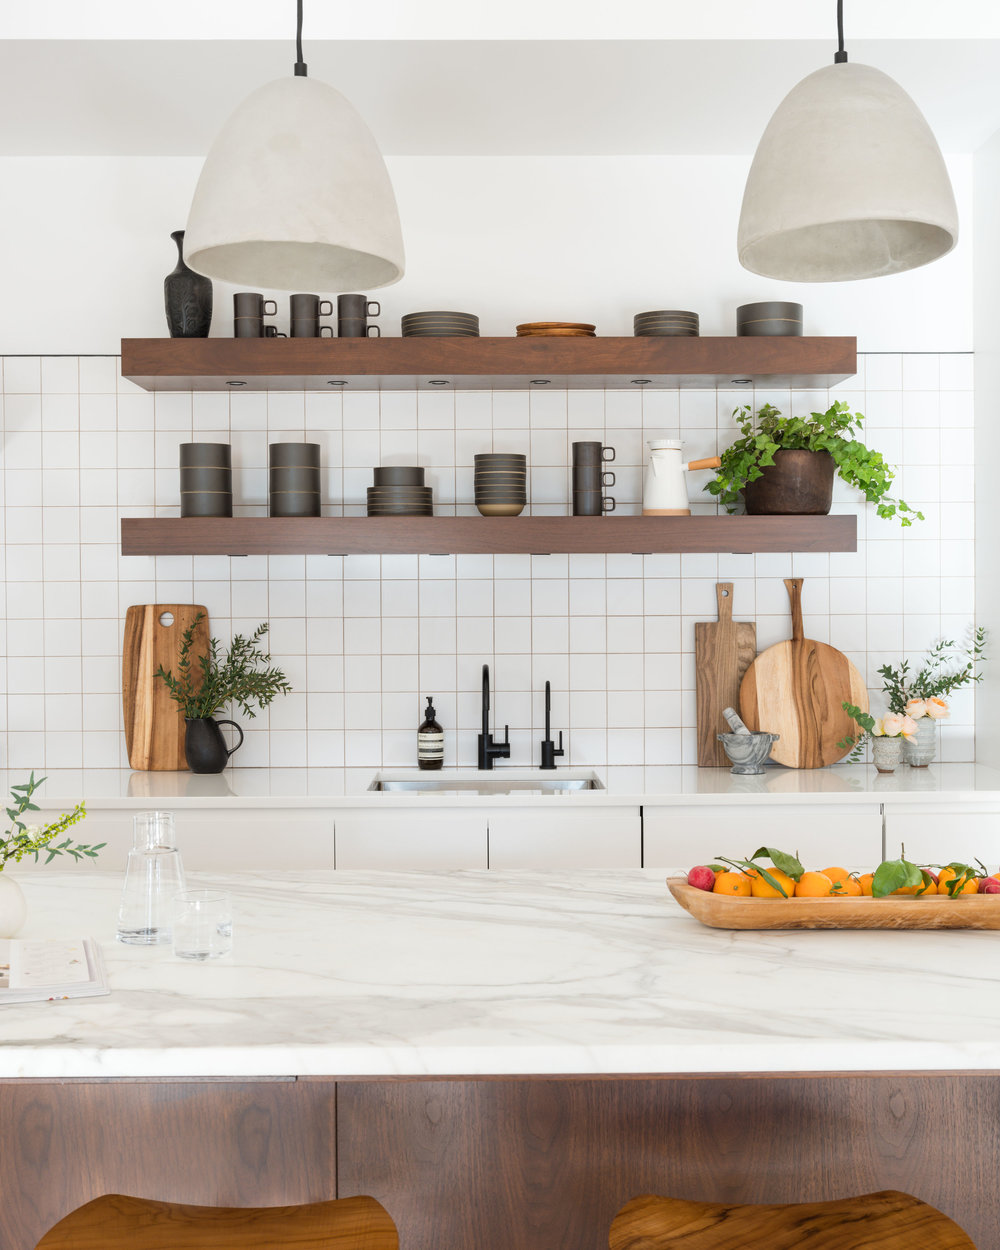 We equipped our Soho loft with a water filtration system from California Faucets